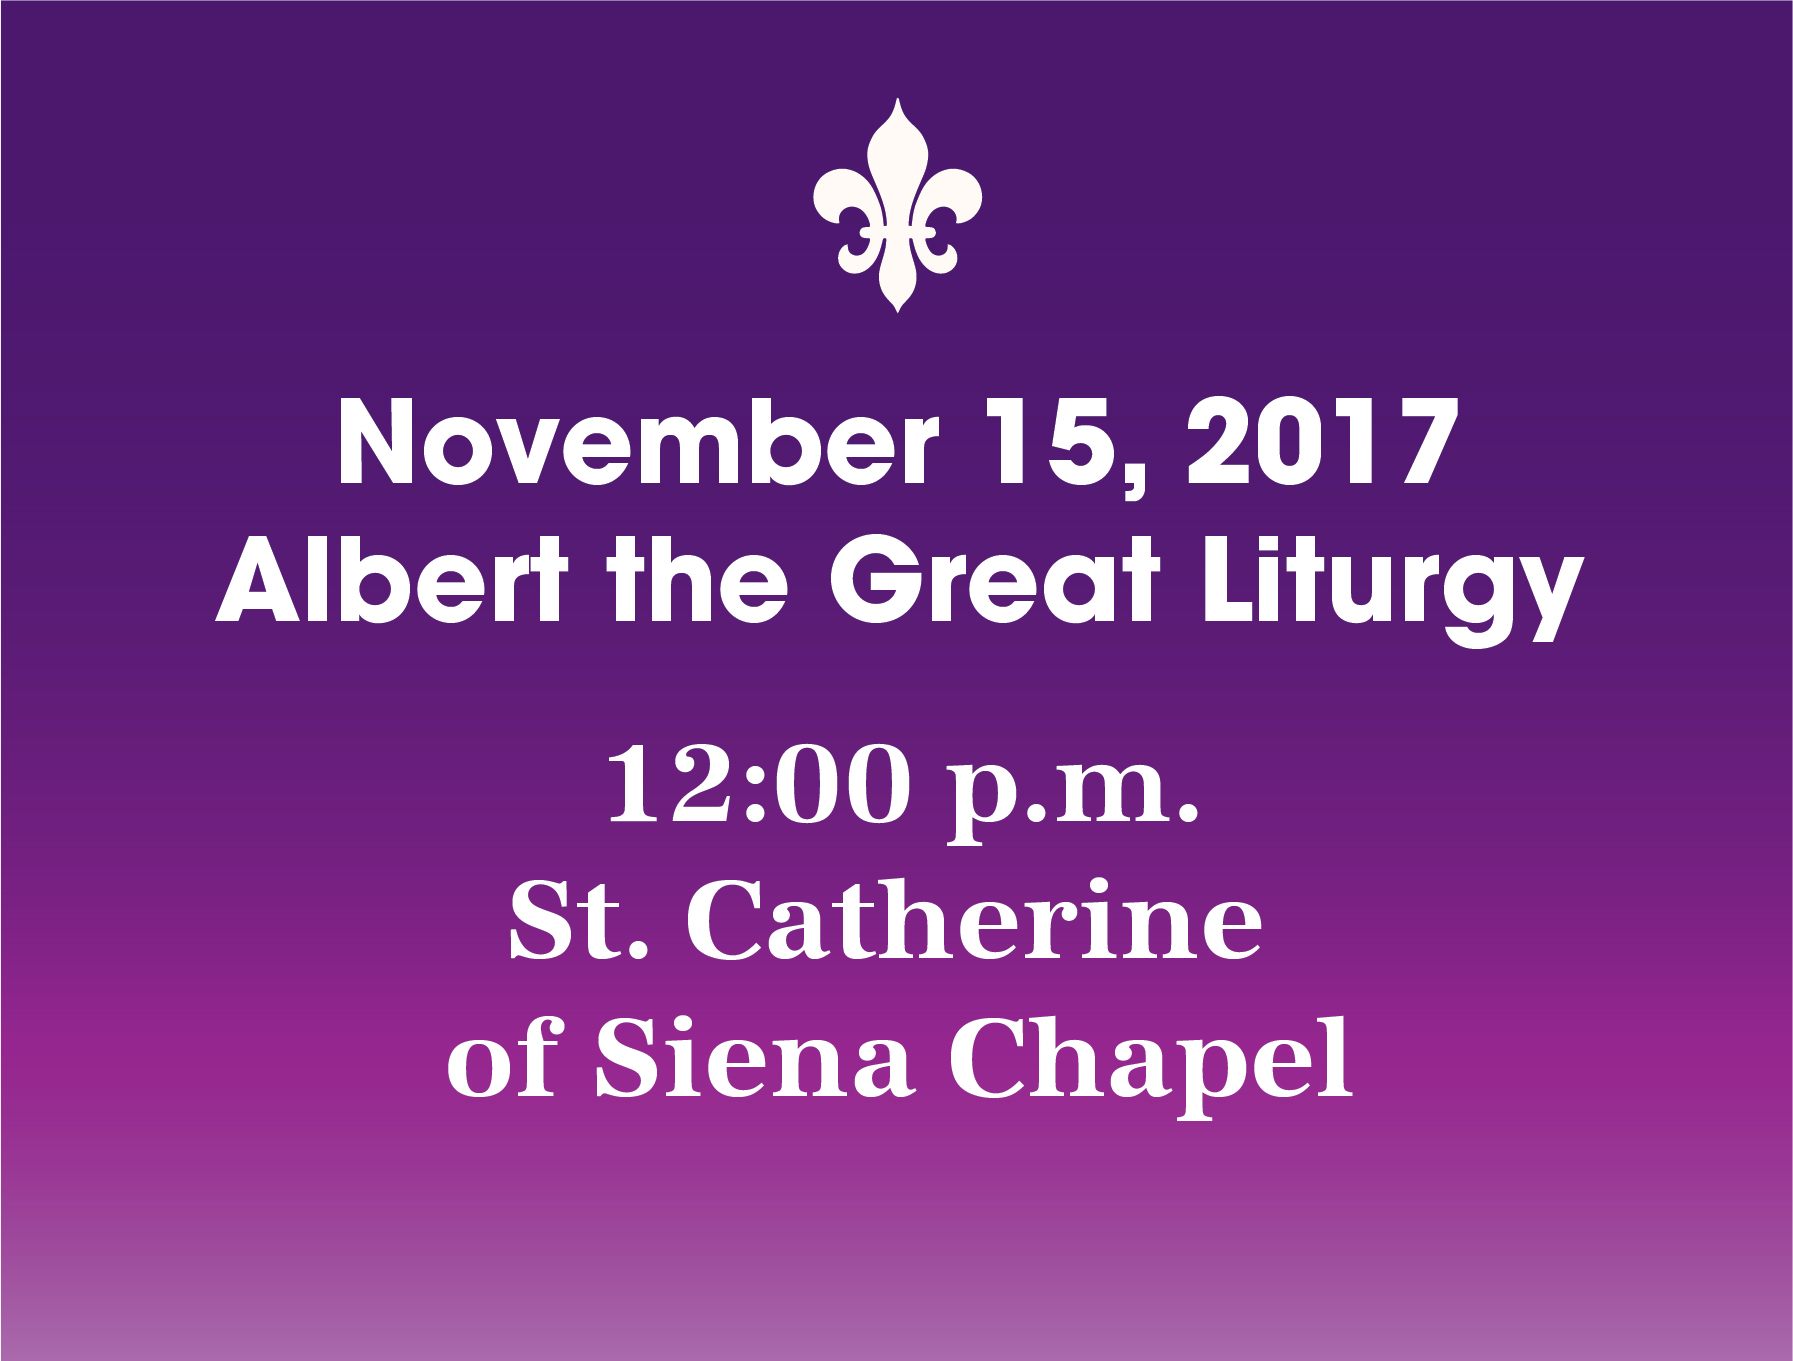 Albert the Great Liturgy